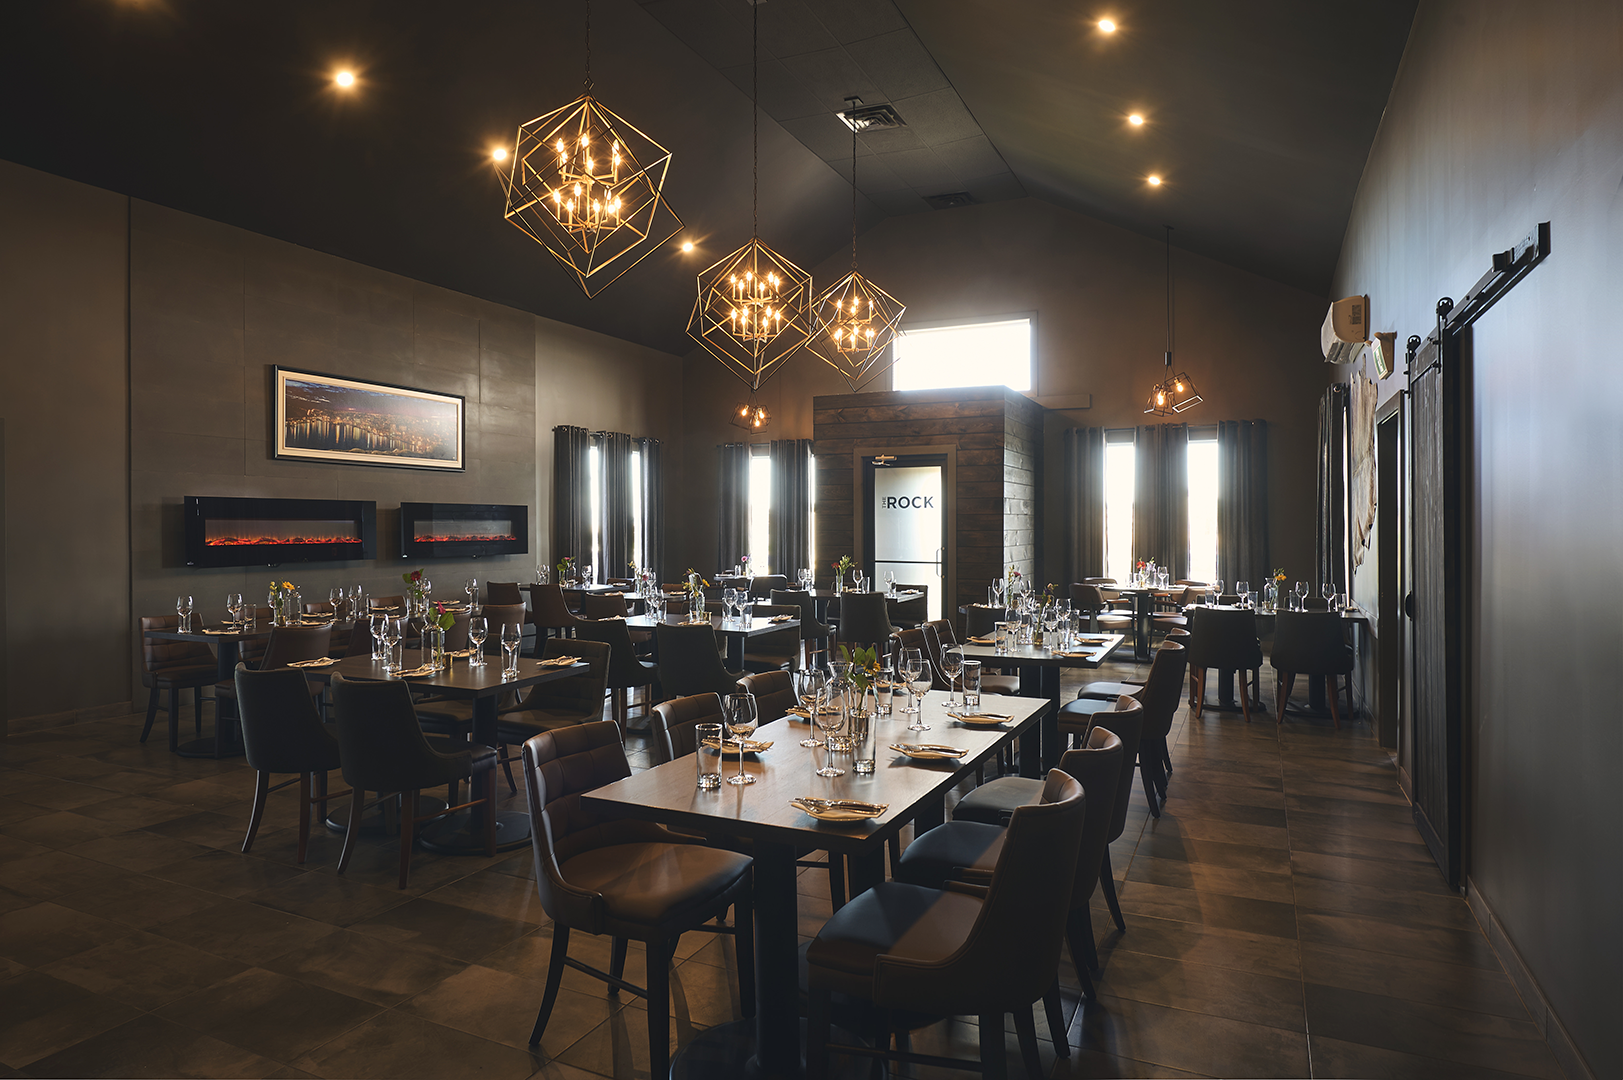 A photo of our East Wing, showing the full room with tables and chairs, and beautiful lighting.